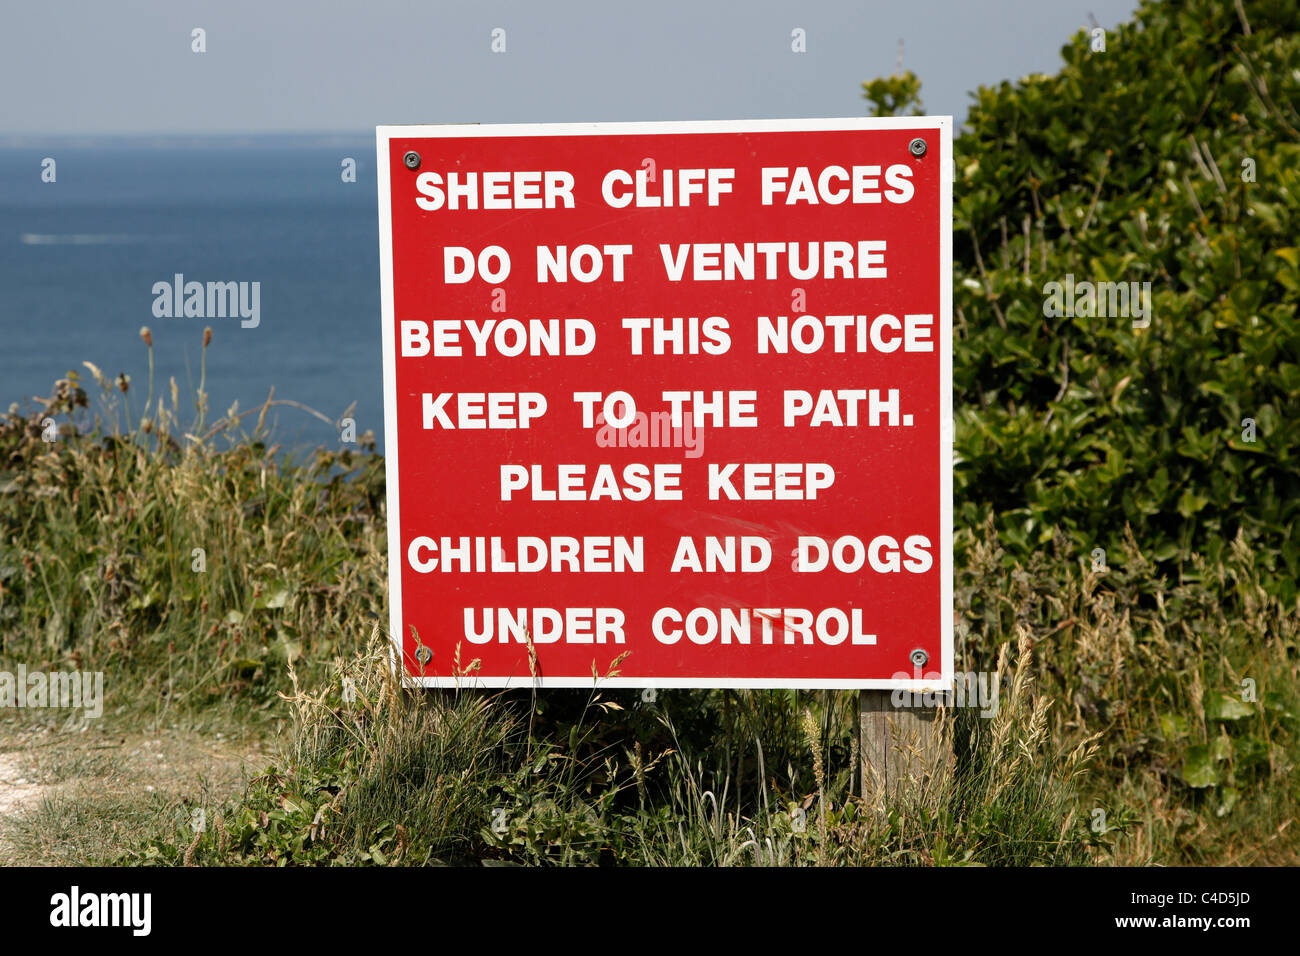 Sheer cliff red danger warning sign on cliffs on the Isle of Wight, England - Stock Image